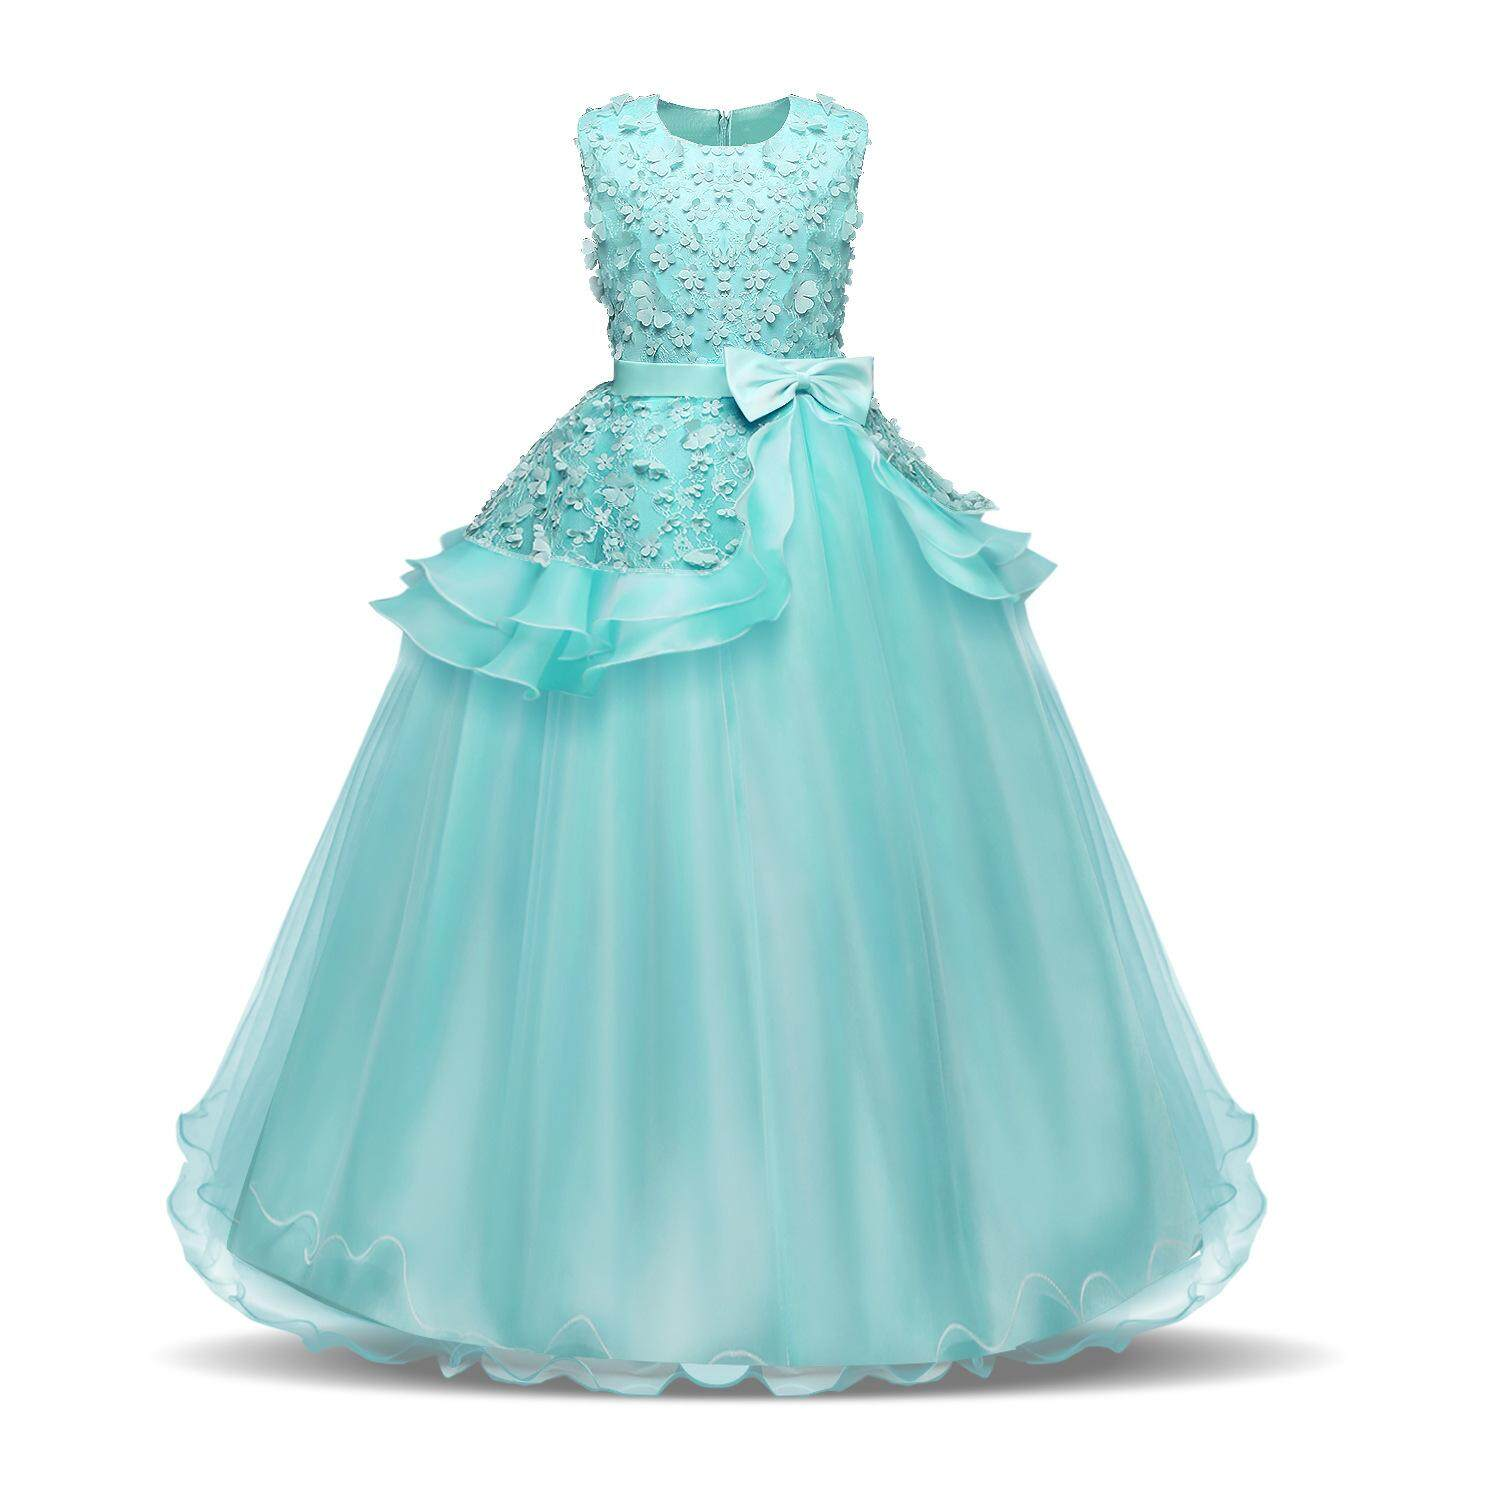 Girls\' Dresses - Buy Girls\' Dresses at Best Price in Malaysia   www ...